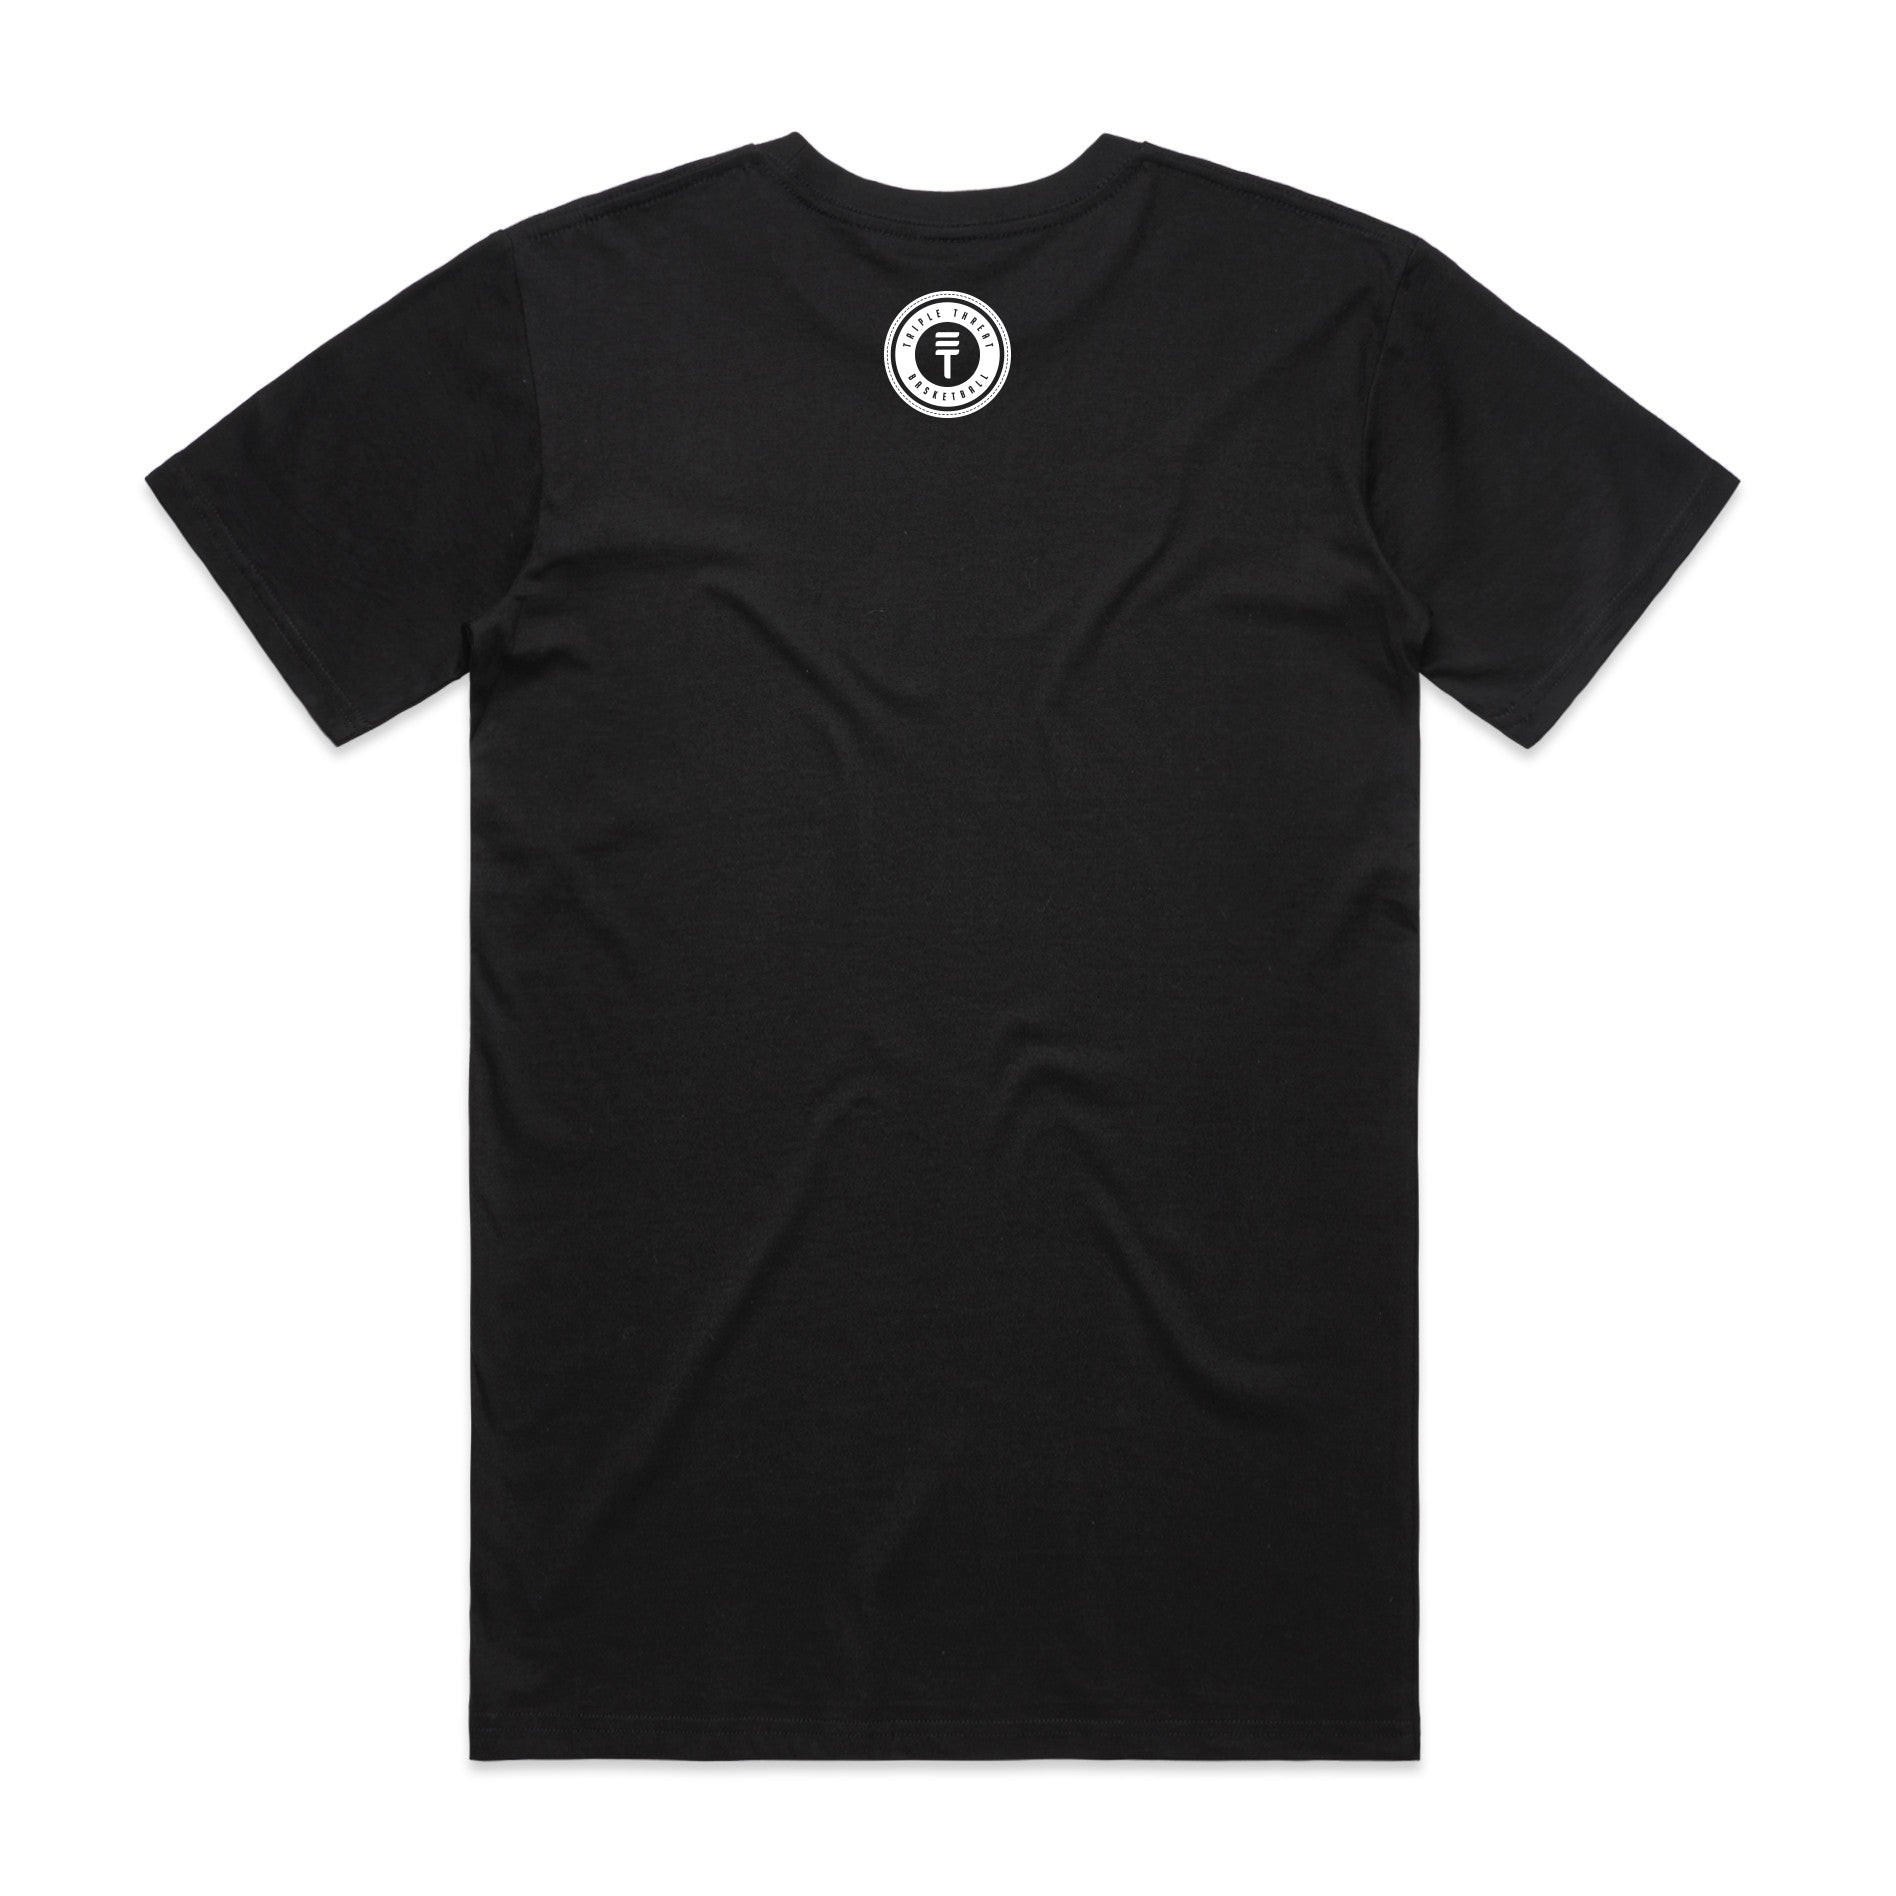 ICON LOGO T-SHIRT - BLACK